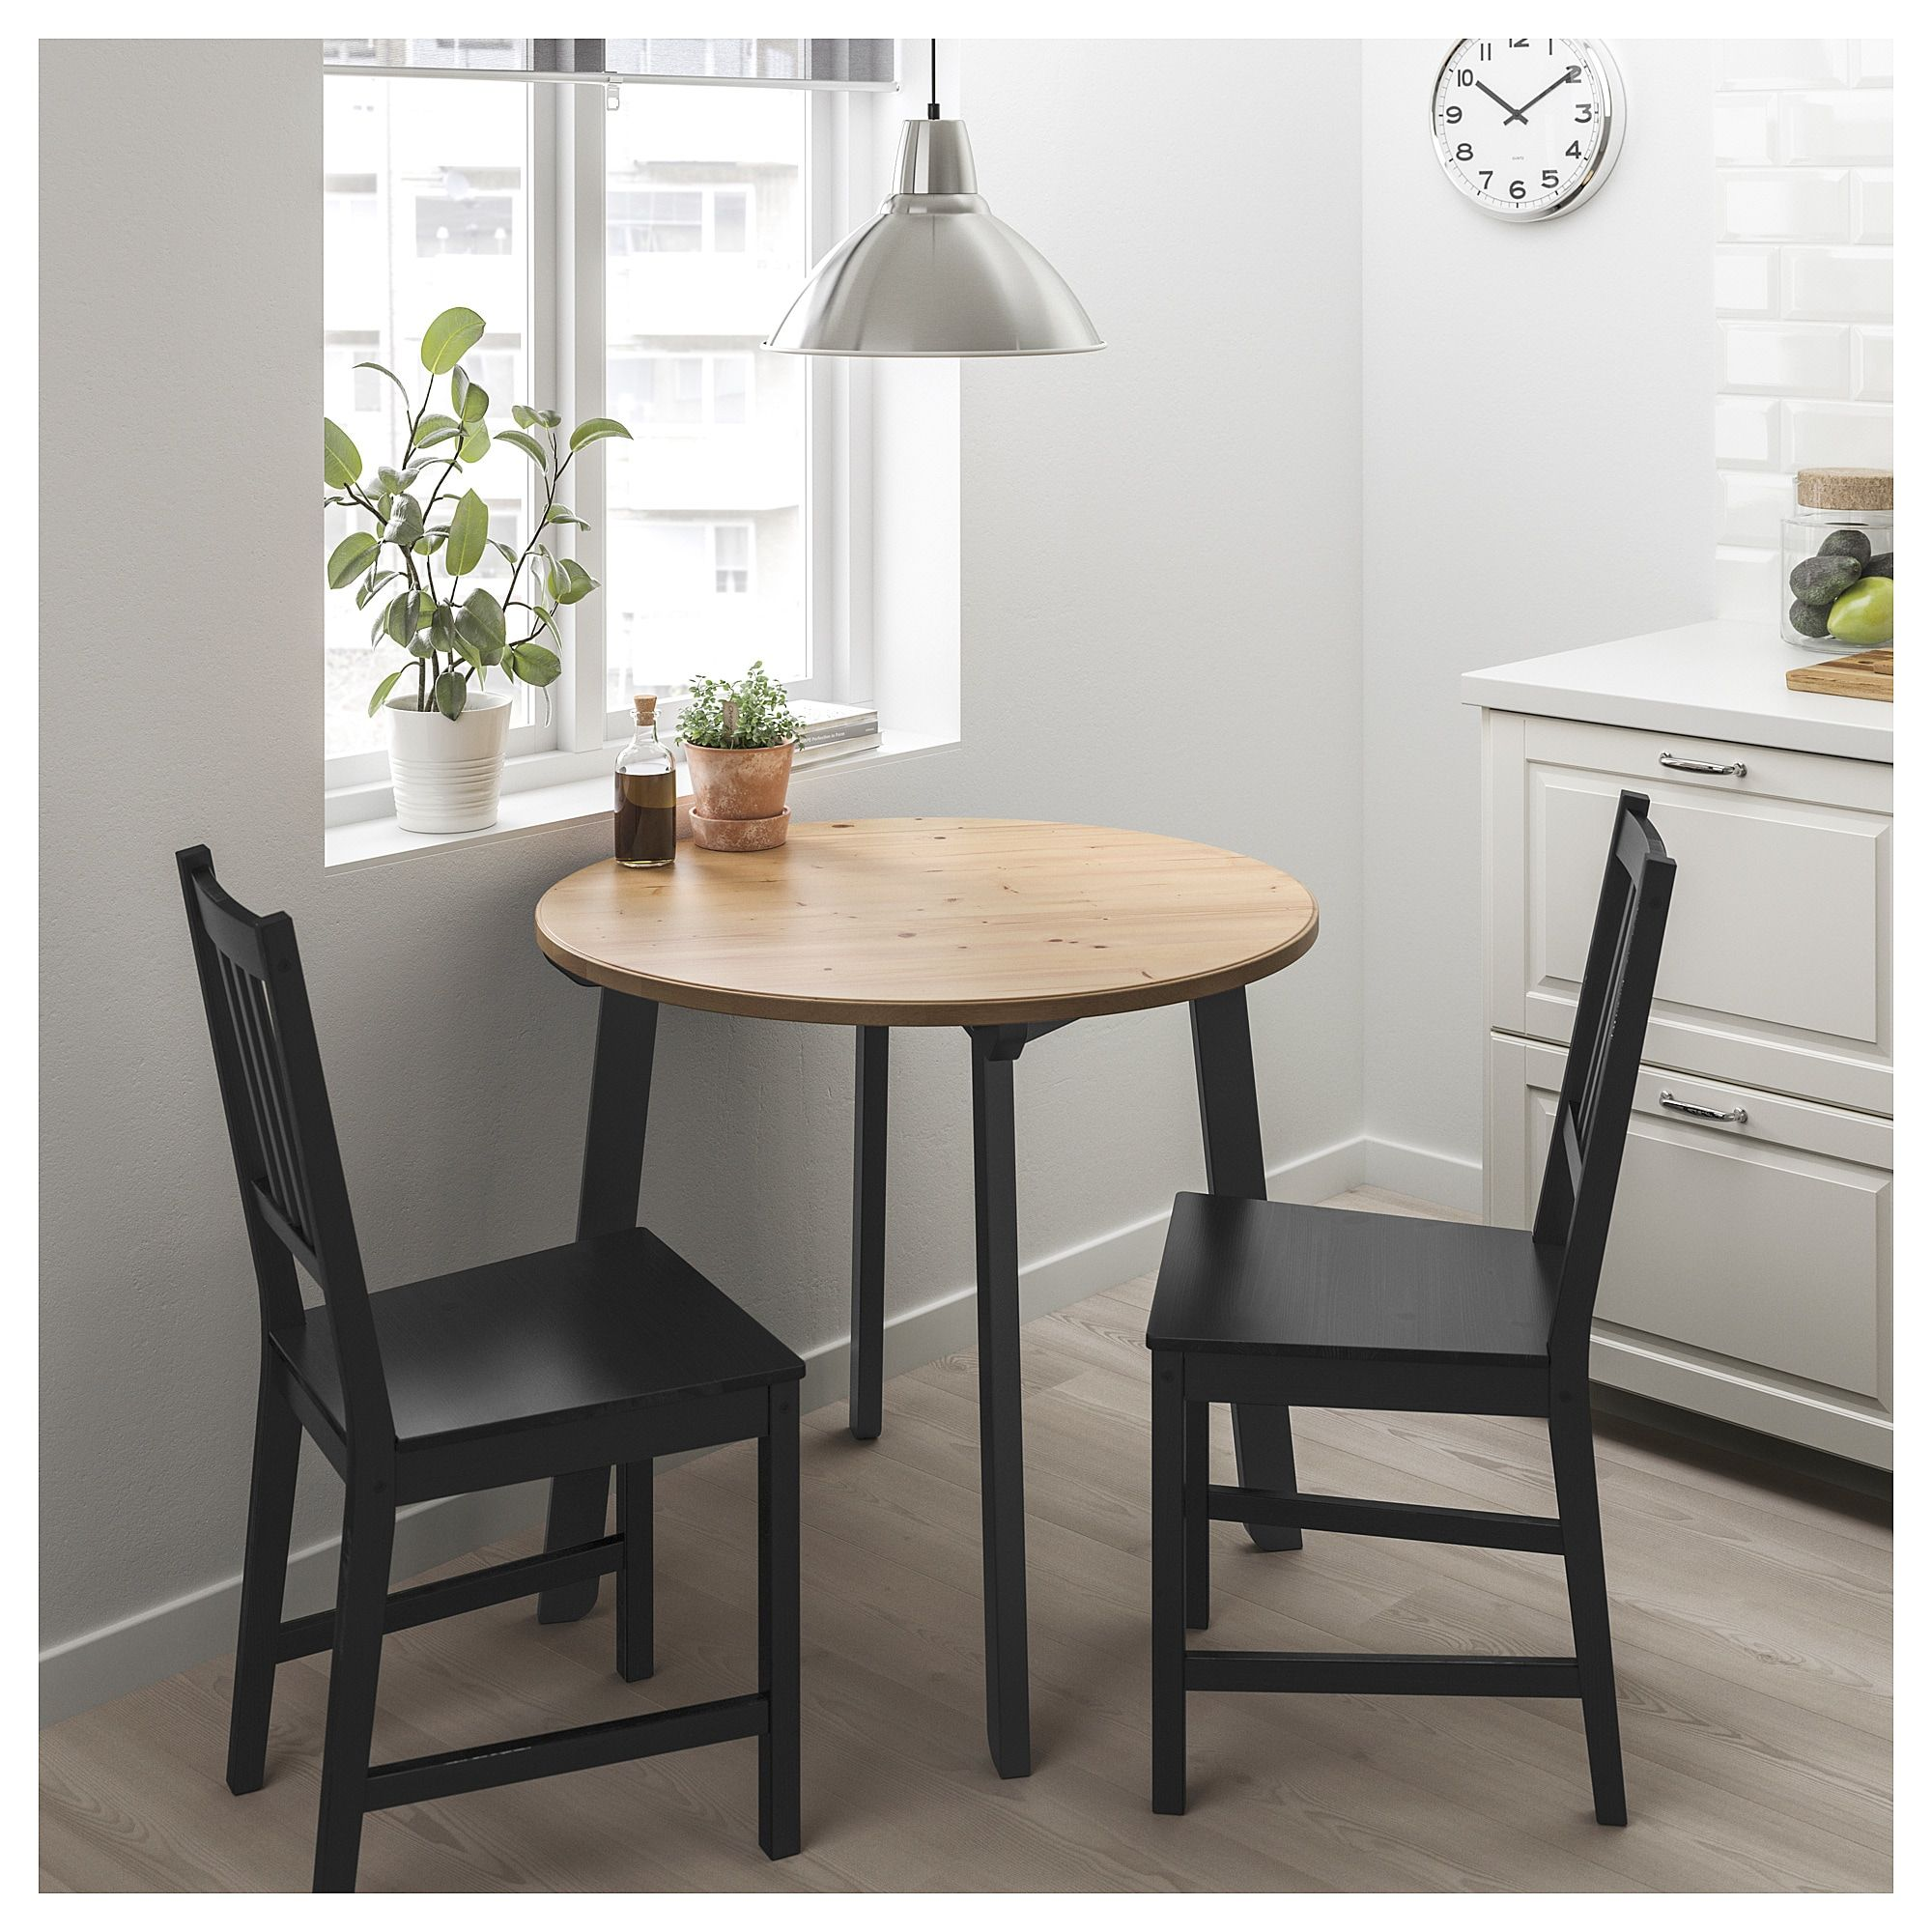 Ikea Gamlared Stefan Table And 2 Chairs Light Antique Stain